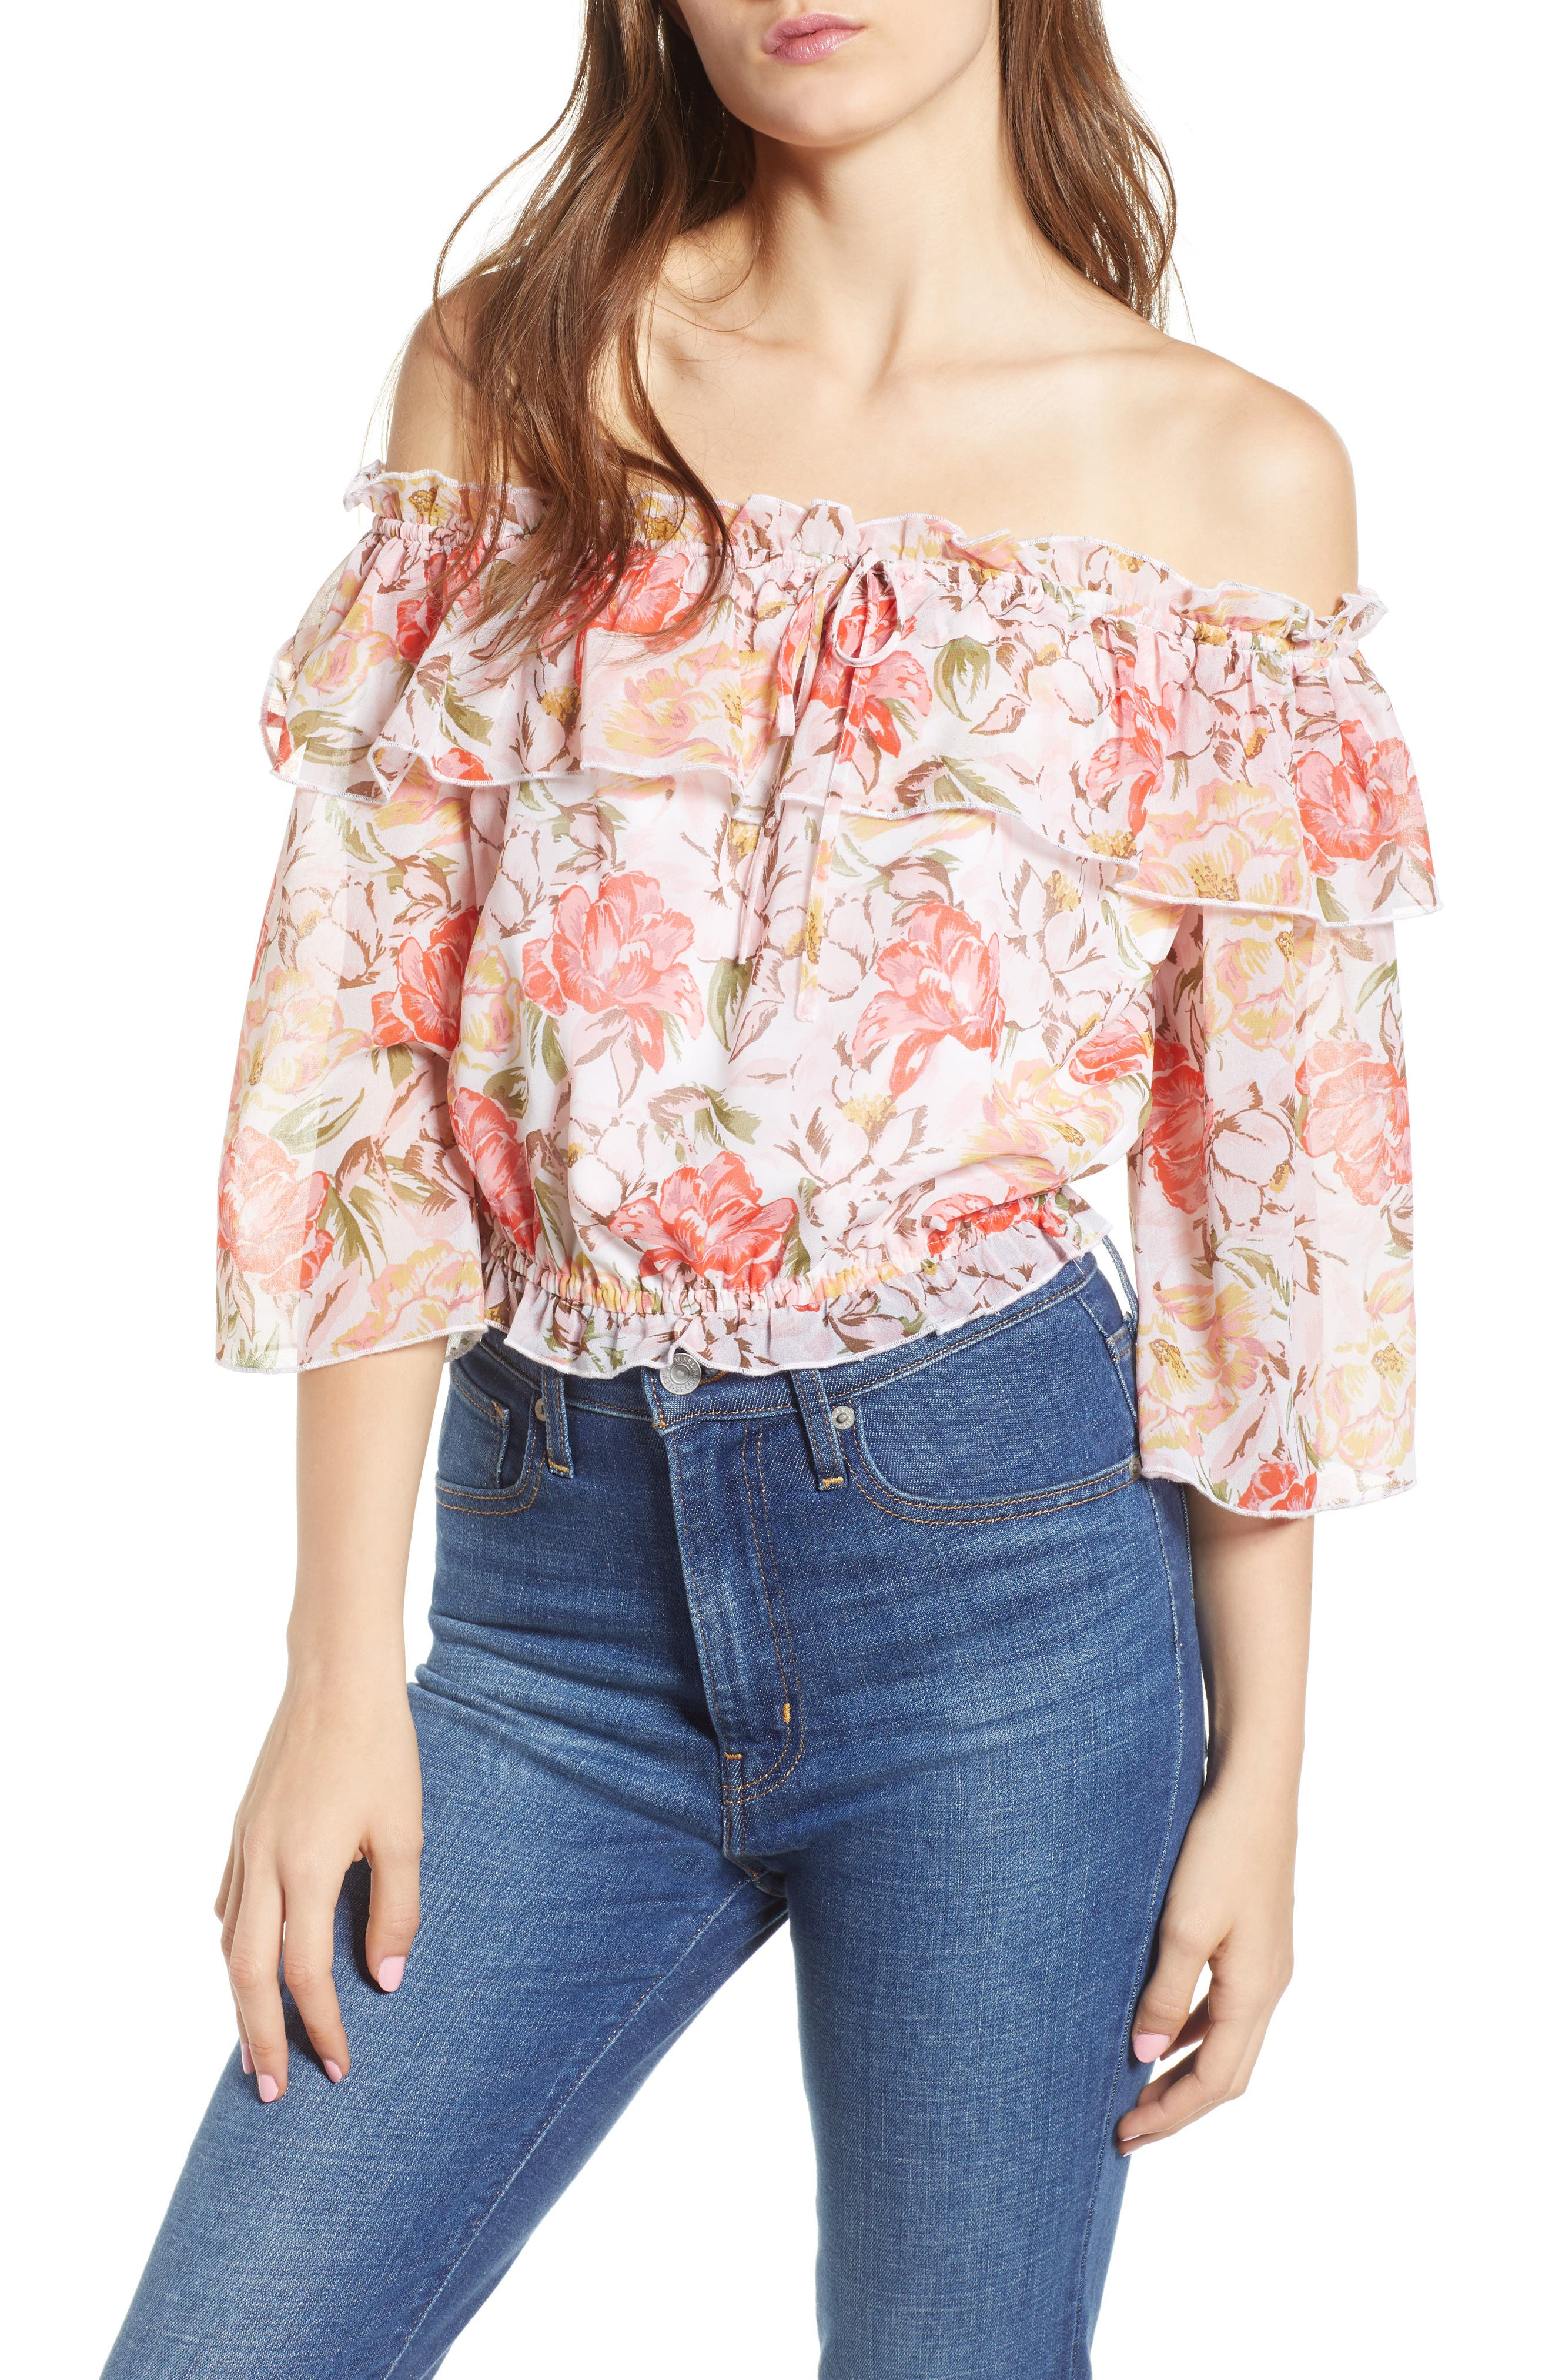 Cosenza Off the Shoulder Crop Top,                             Main thumbnail 1, color,                             905